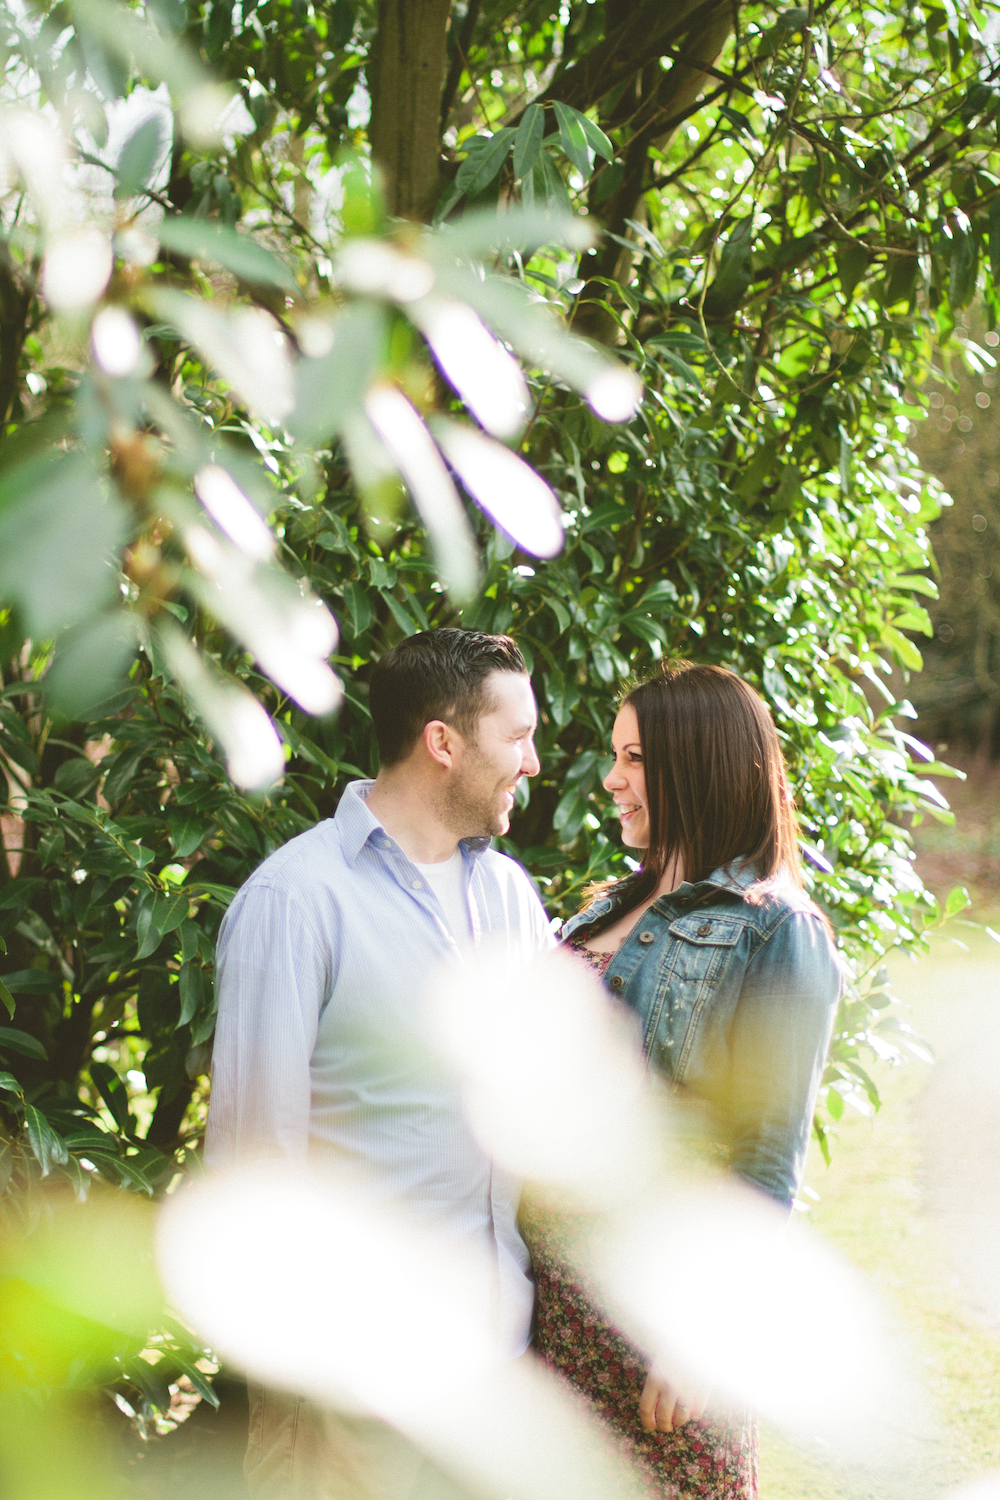 Pre-Wedding-Photography-Cheshunt2.jpg